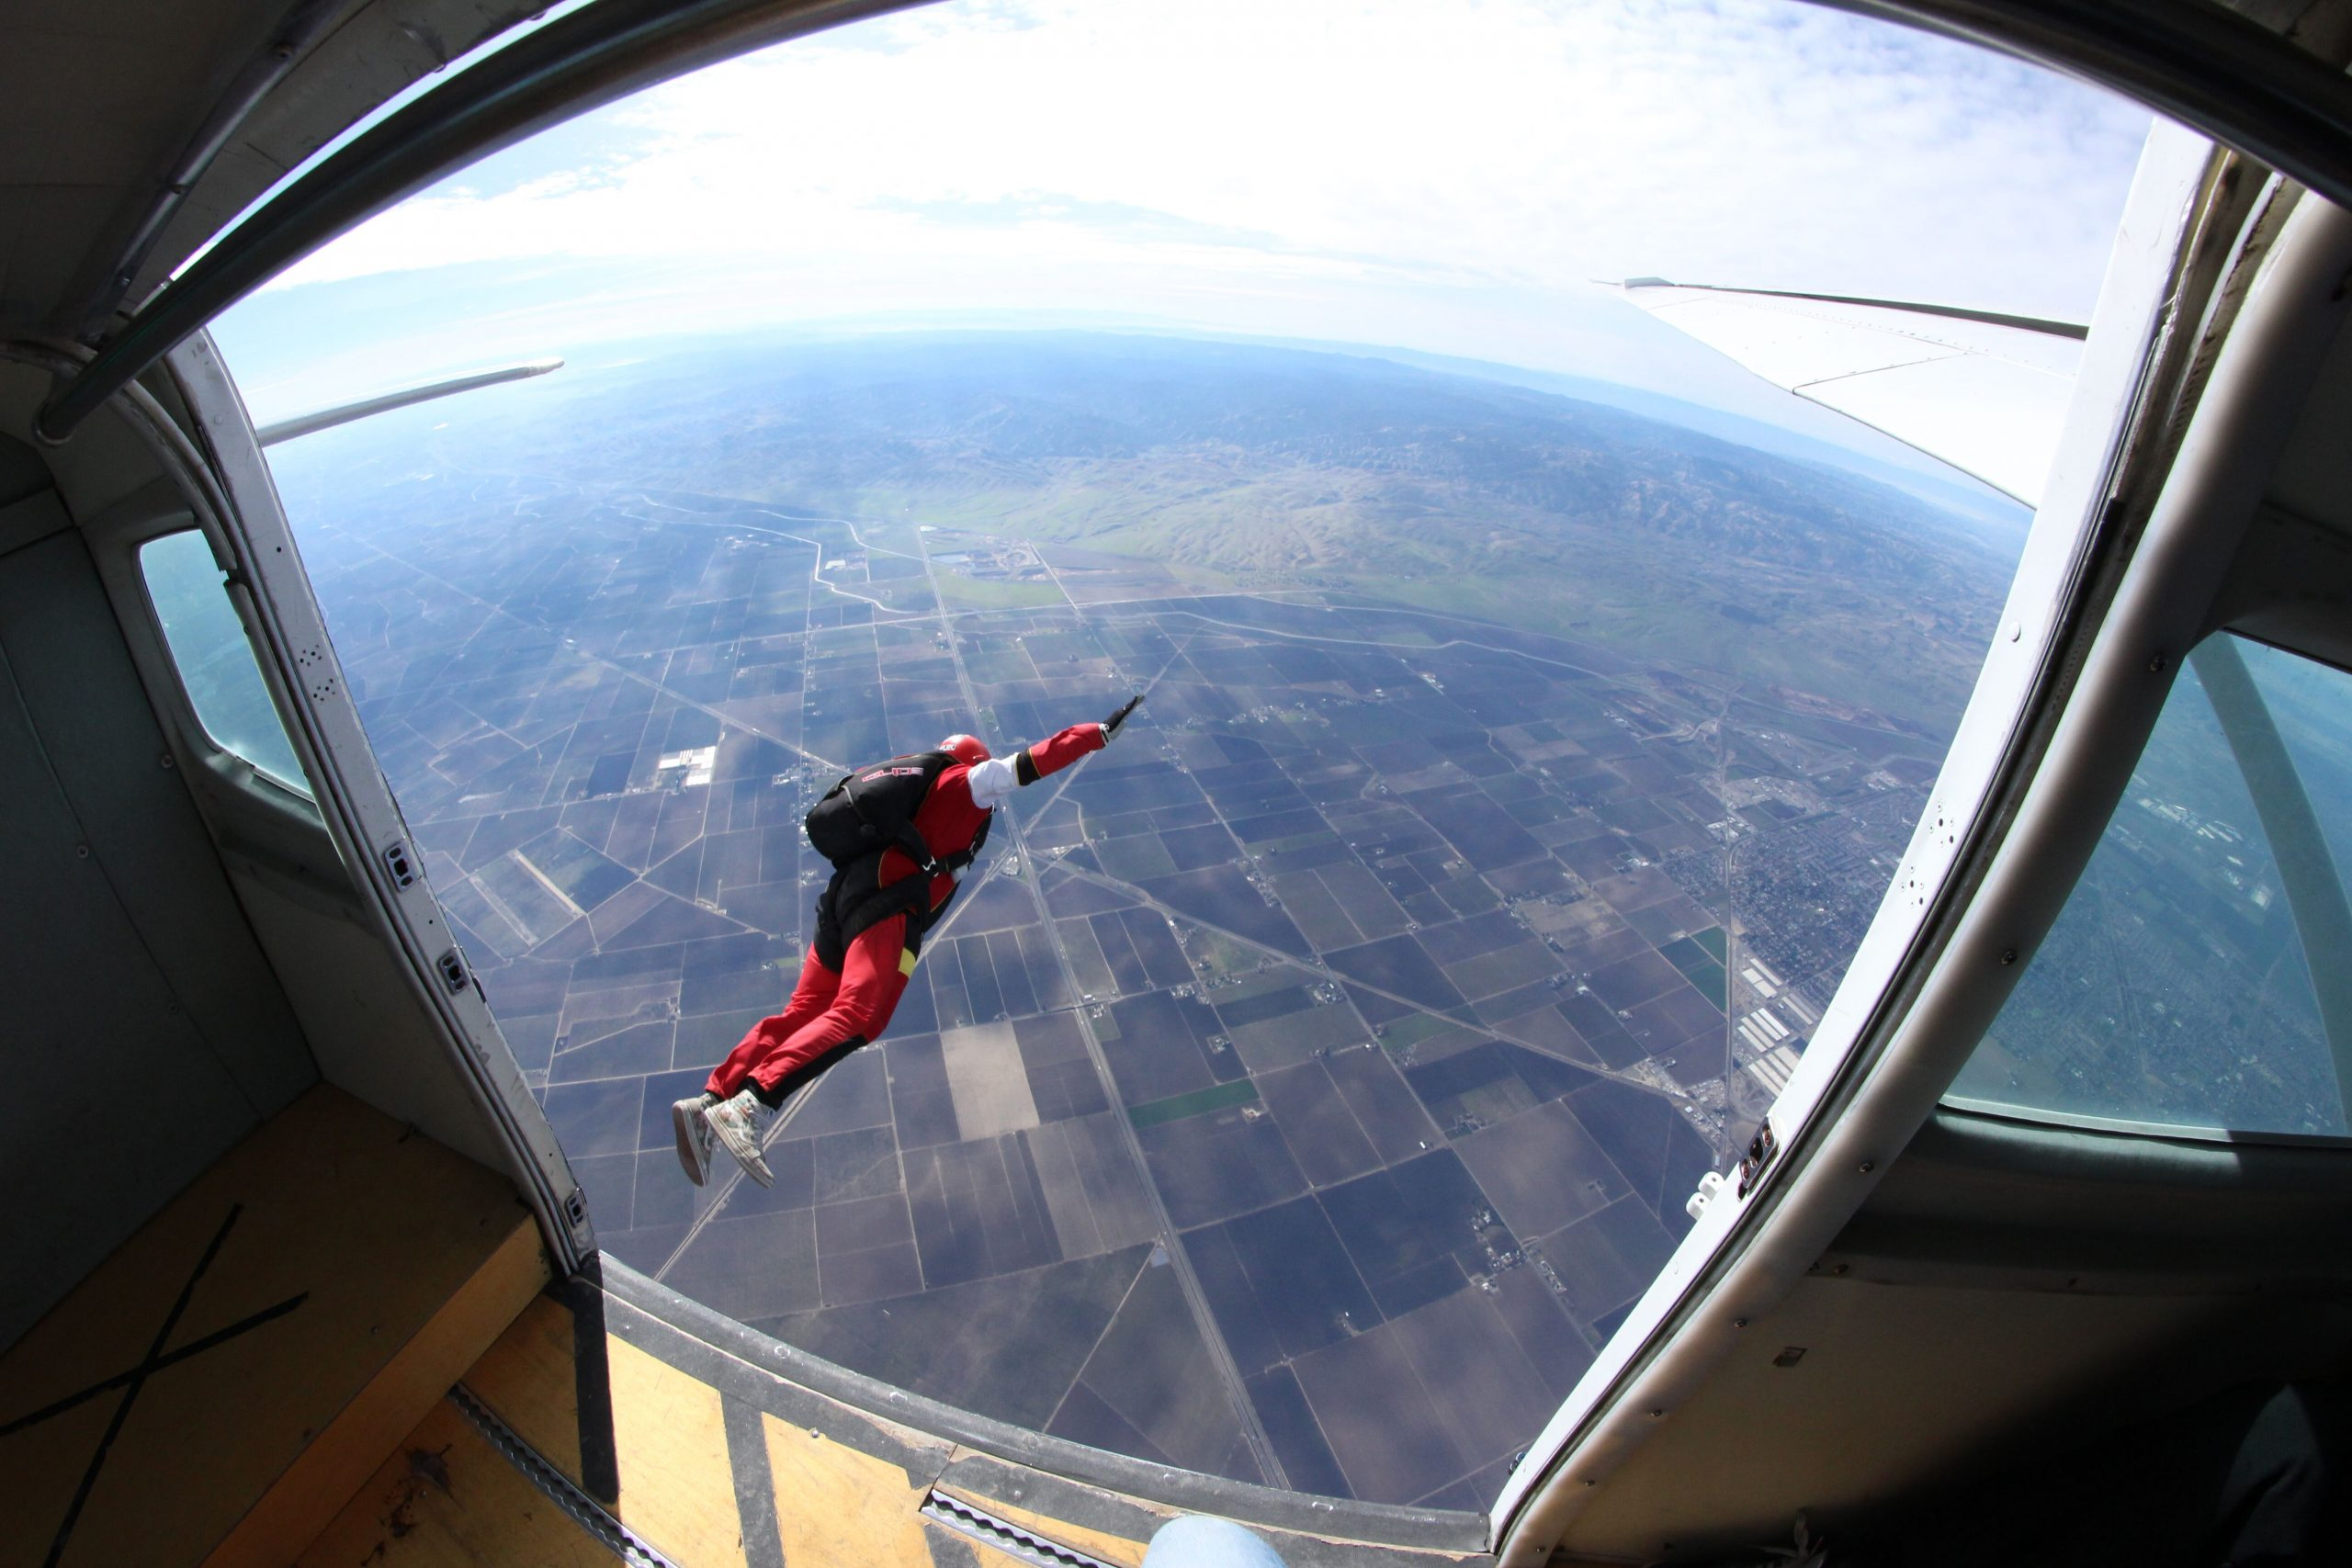 how long do you freefall when skydiving hop n pop skydiving